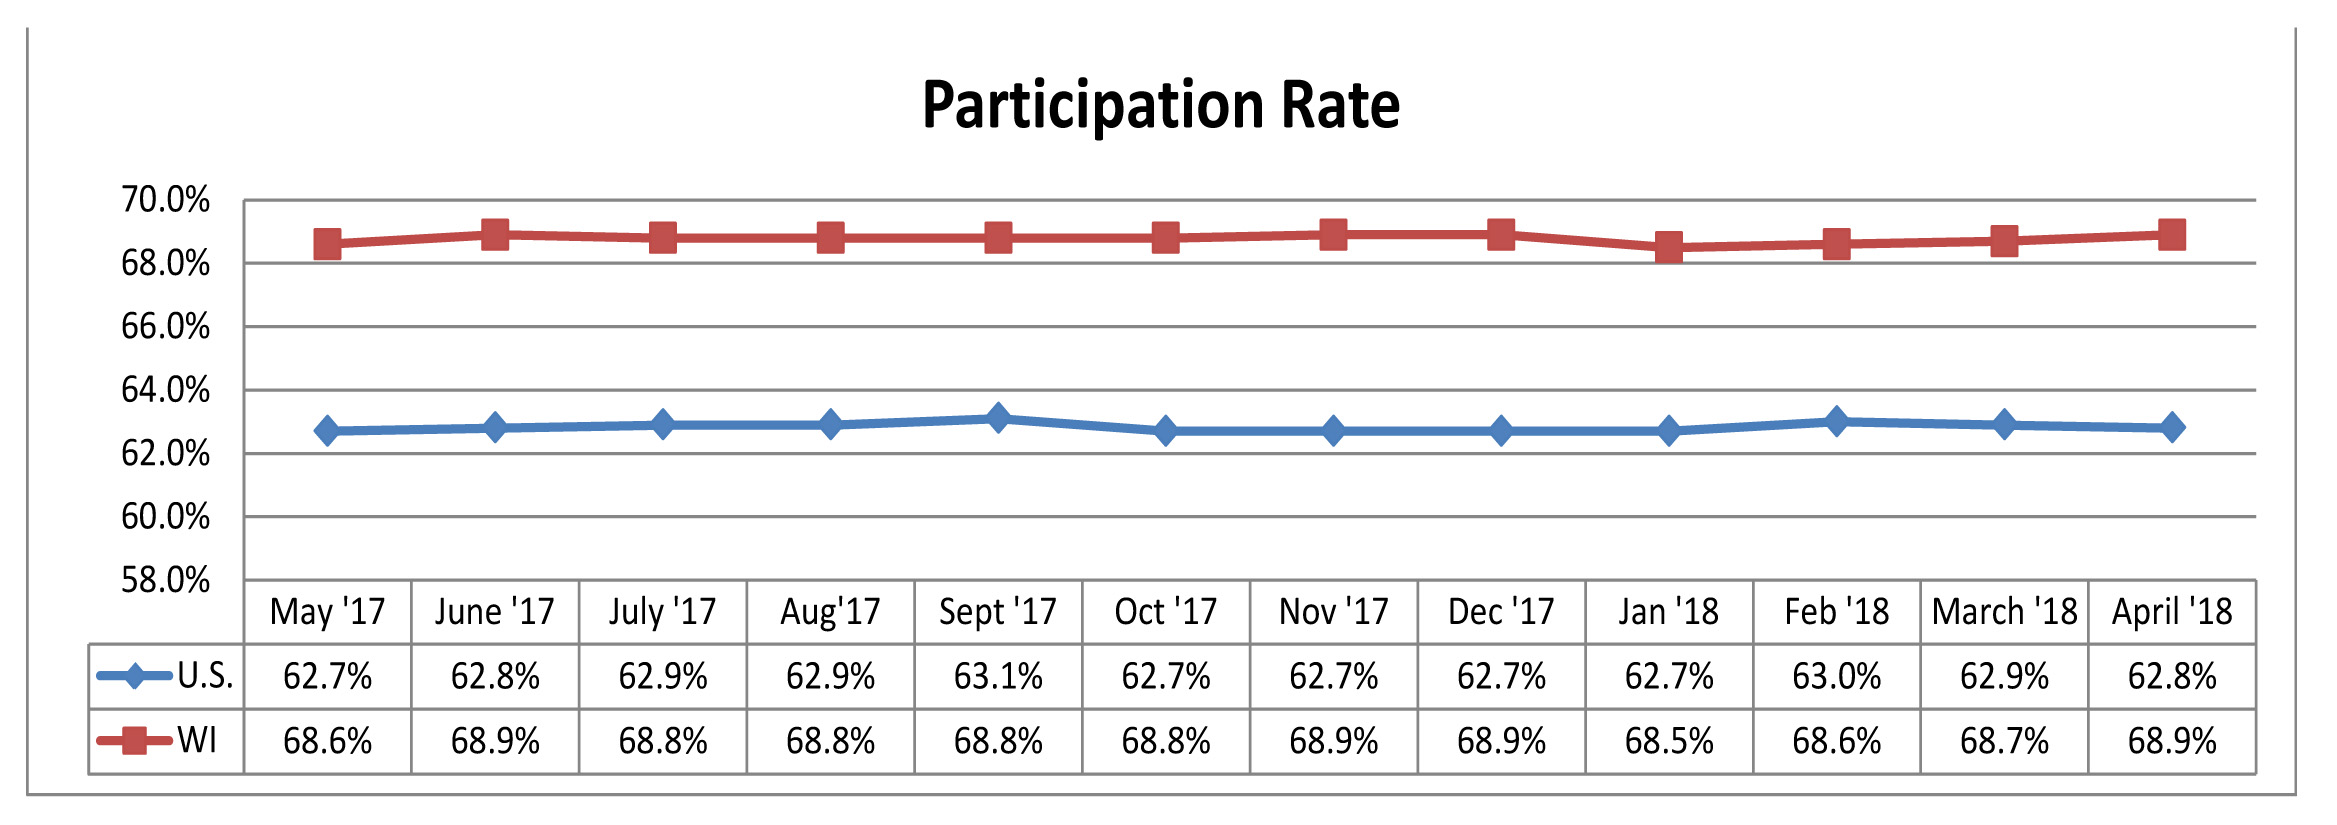 May 2018 Participation Rate